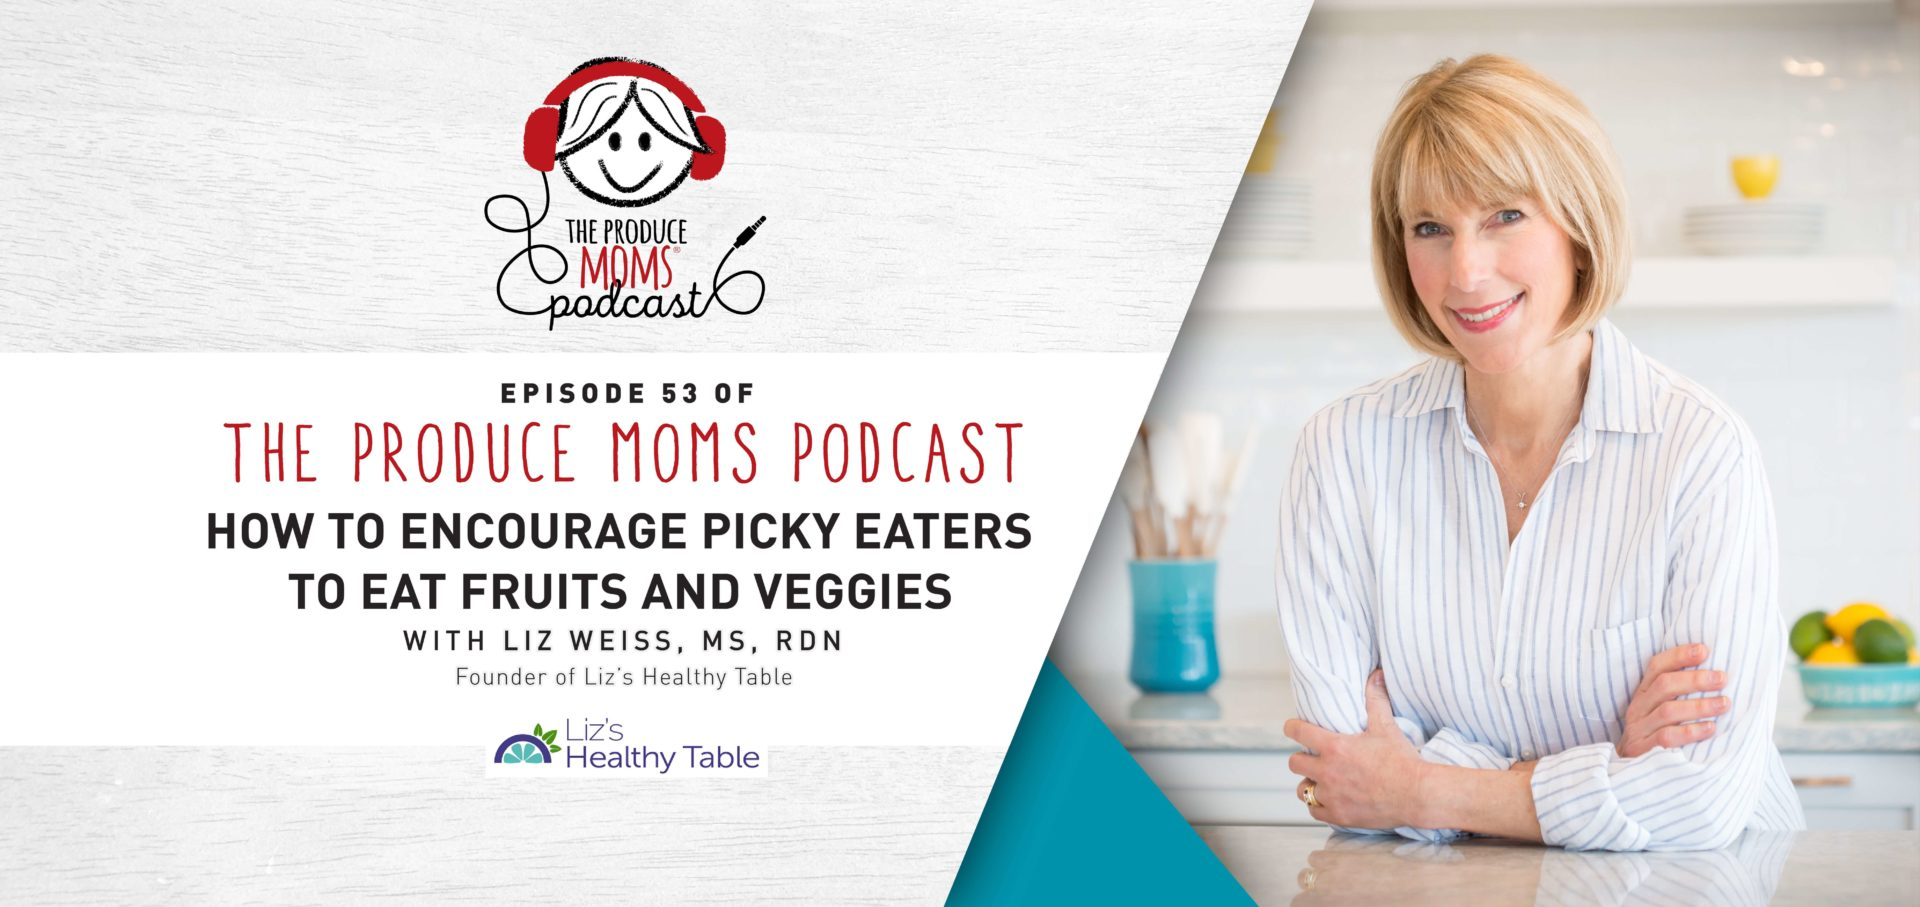 Episode 53: How to Encourage Picky Eaters to Eat Fruits and Veggies with Liz Weiss, MS, RDN